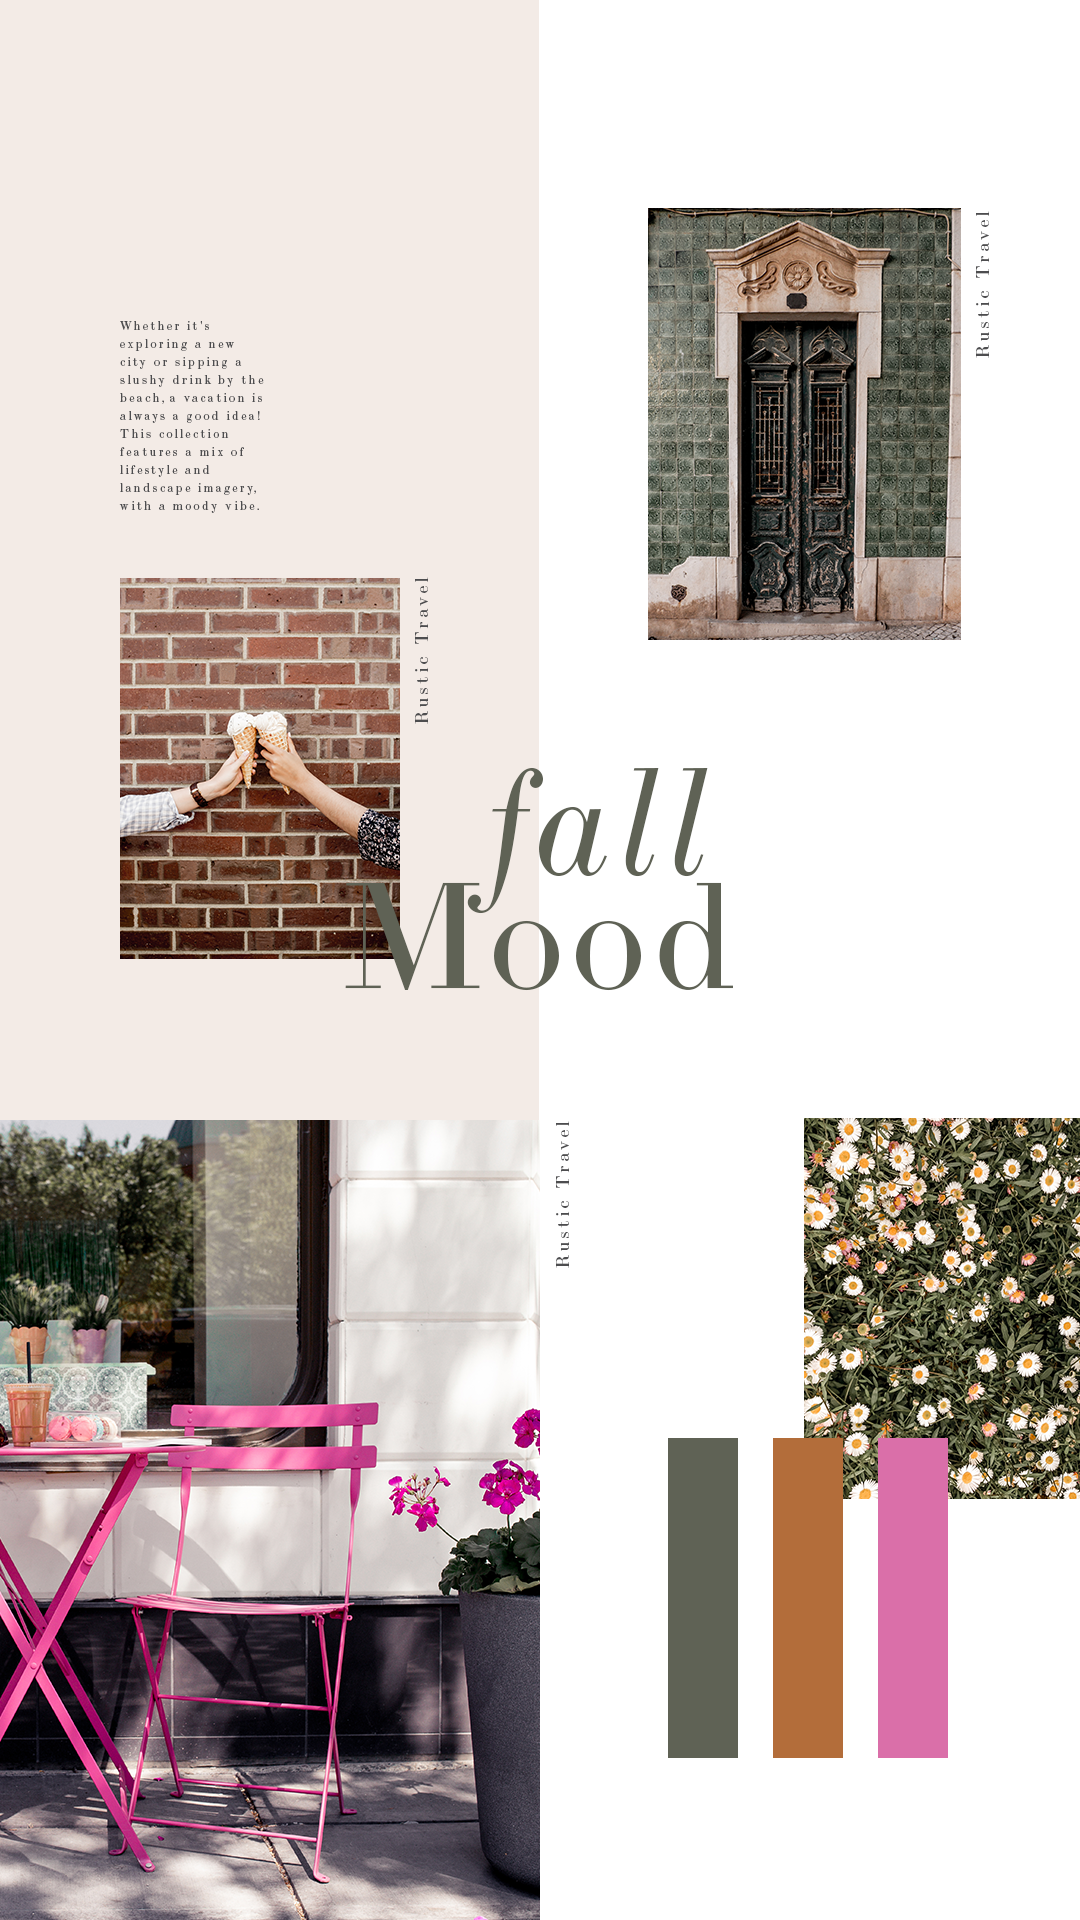 Olive green, burnt orange, and hot pink make a unique combination for a new spin on a fall color palette.